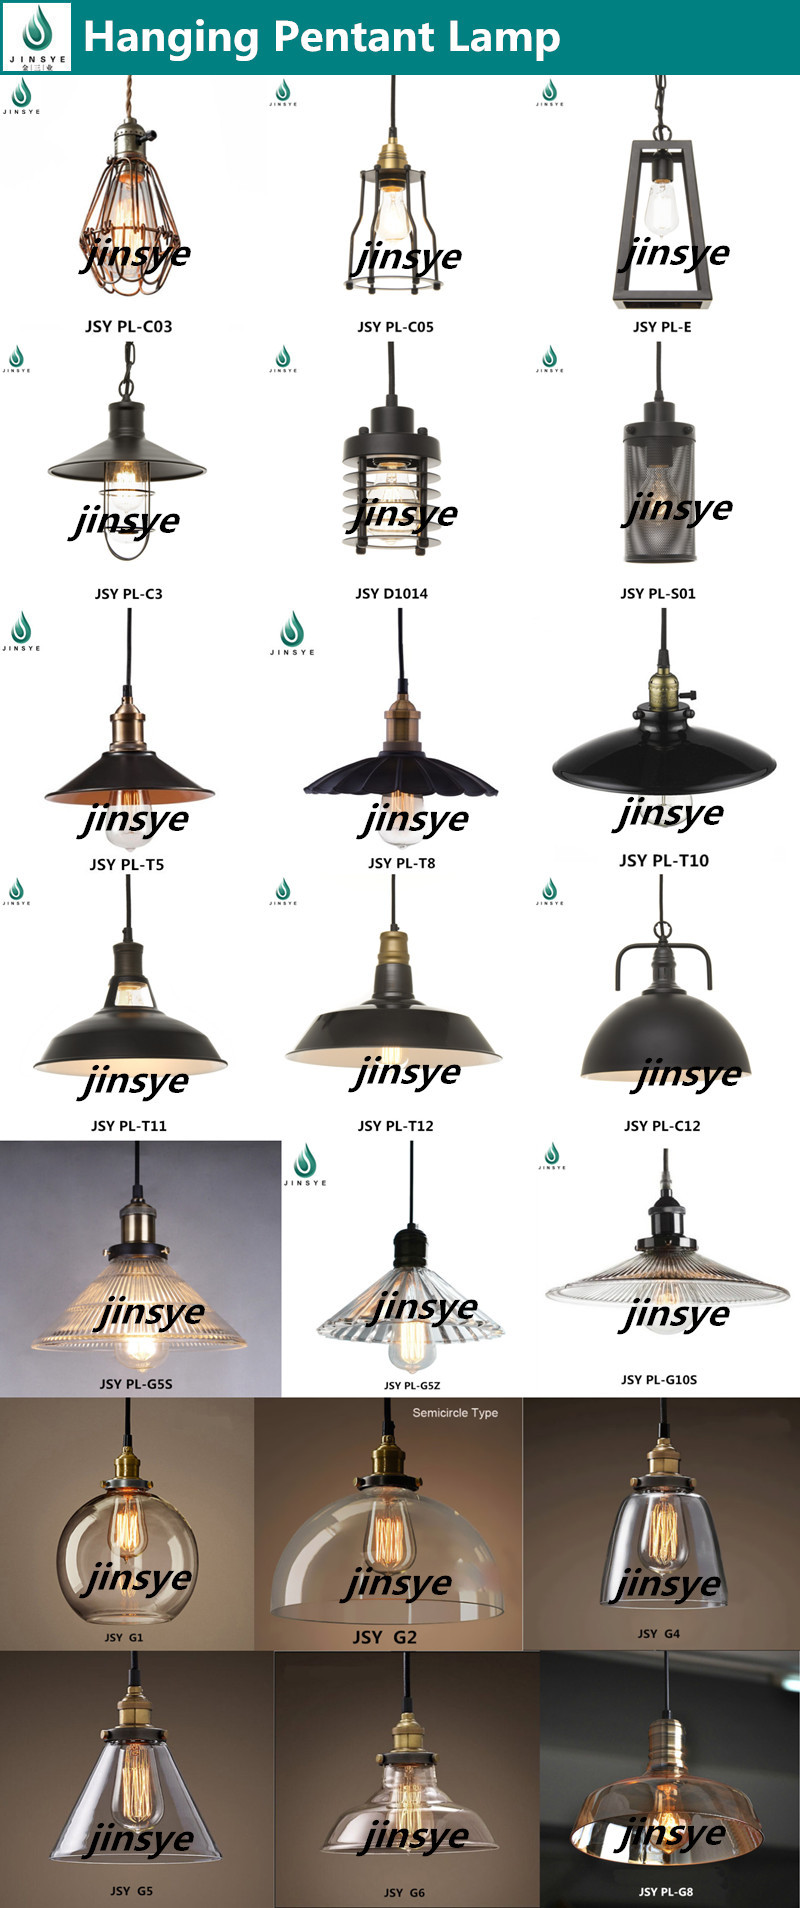 Pendant Lighting Lamp Modern Industrial Chandelier with Plug In Vintage Antique Cord Hangout Lighting